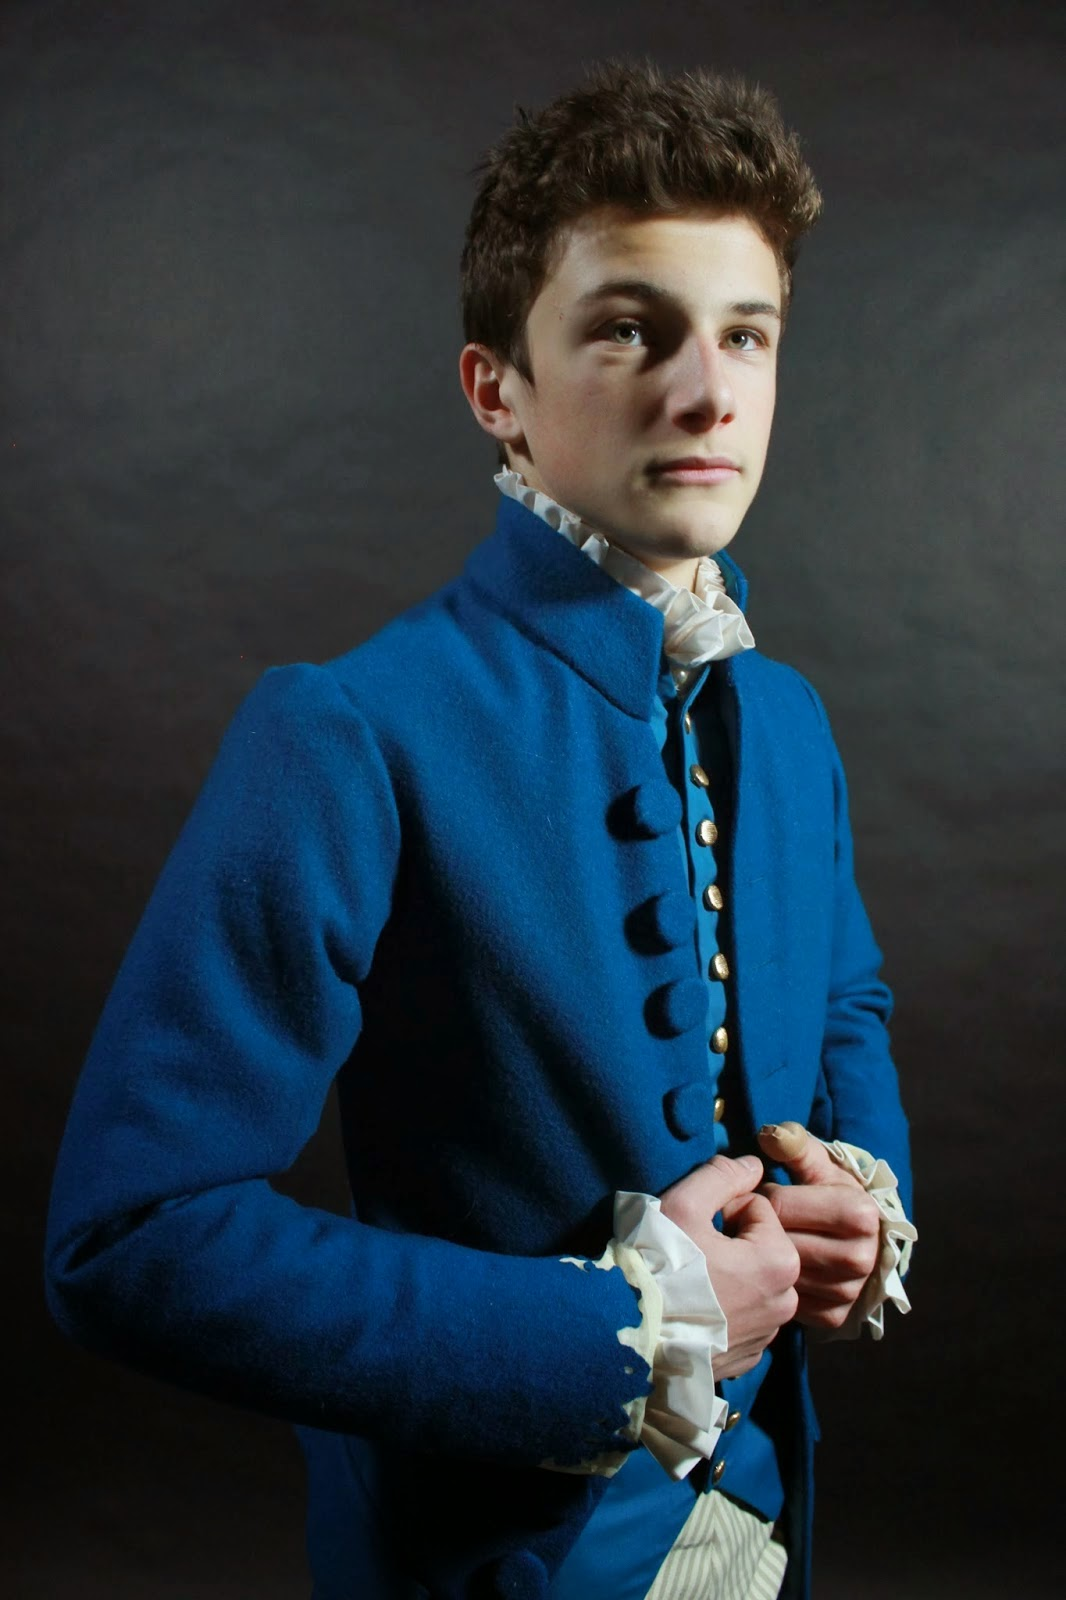 http://showtimestitches.blogspot.com.br/2013/11/18th-century-menswear-costume-danceny.html